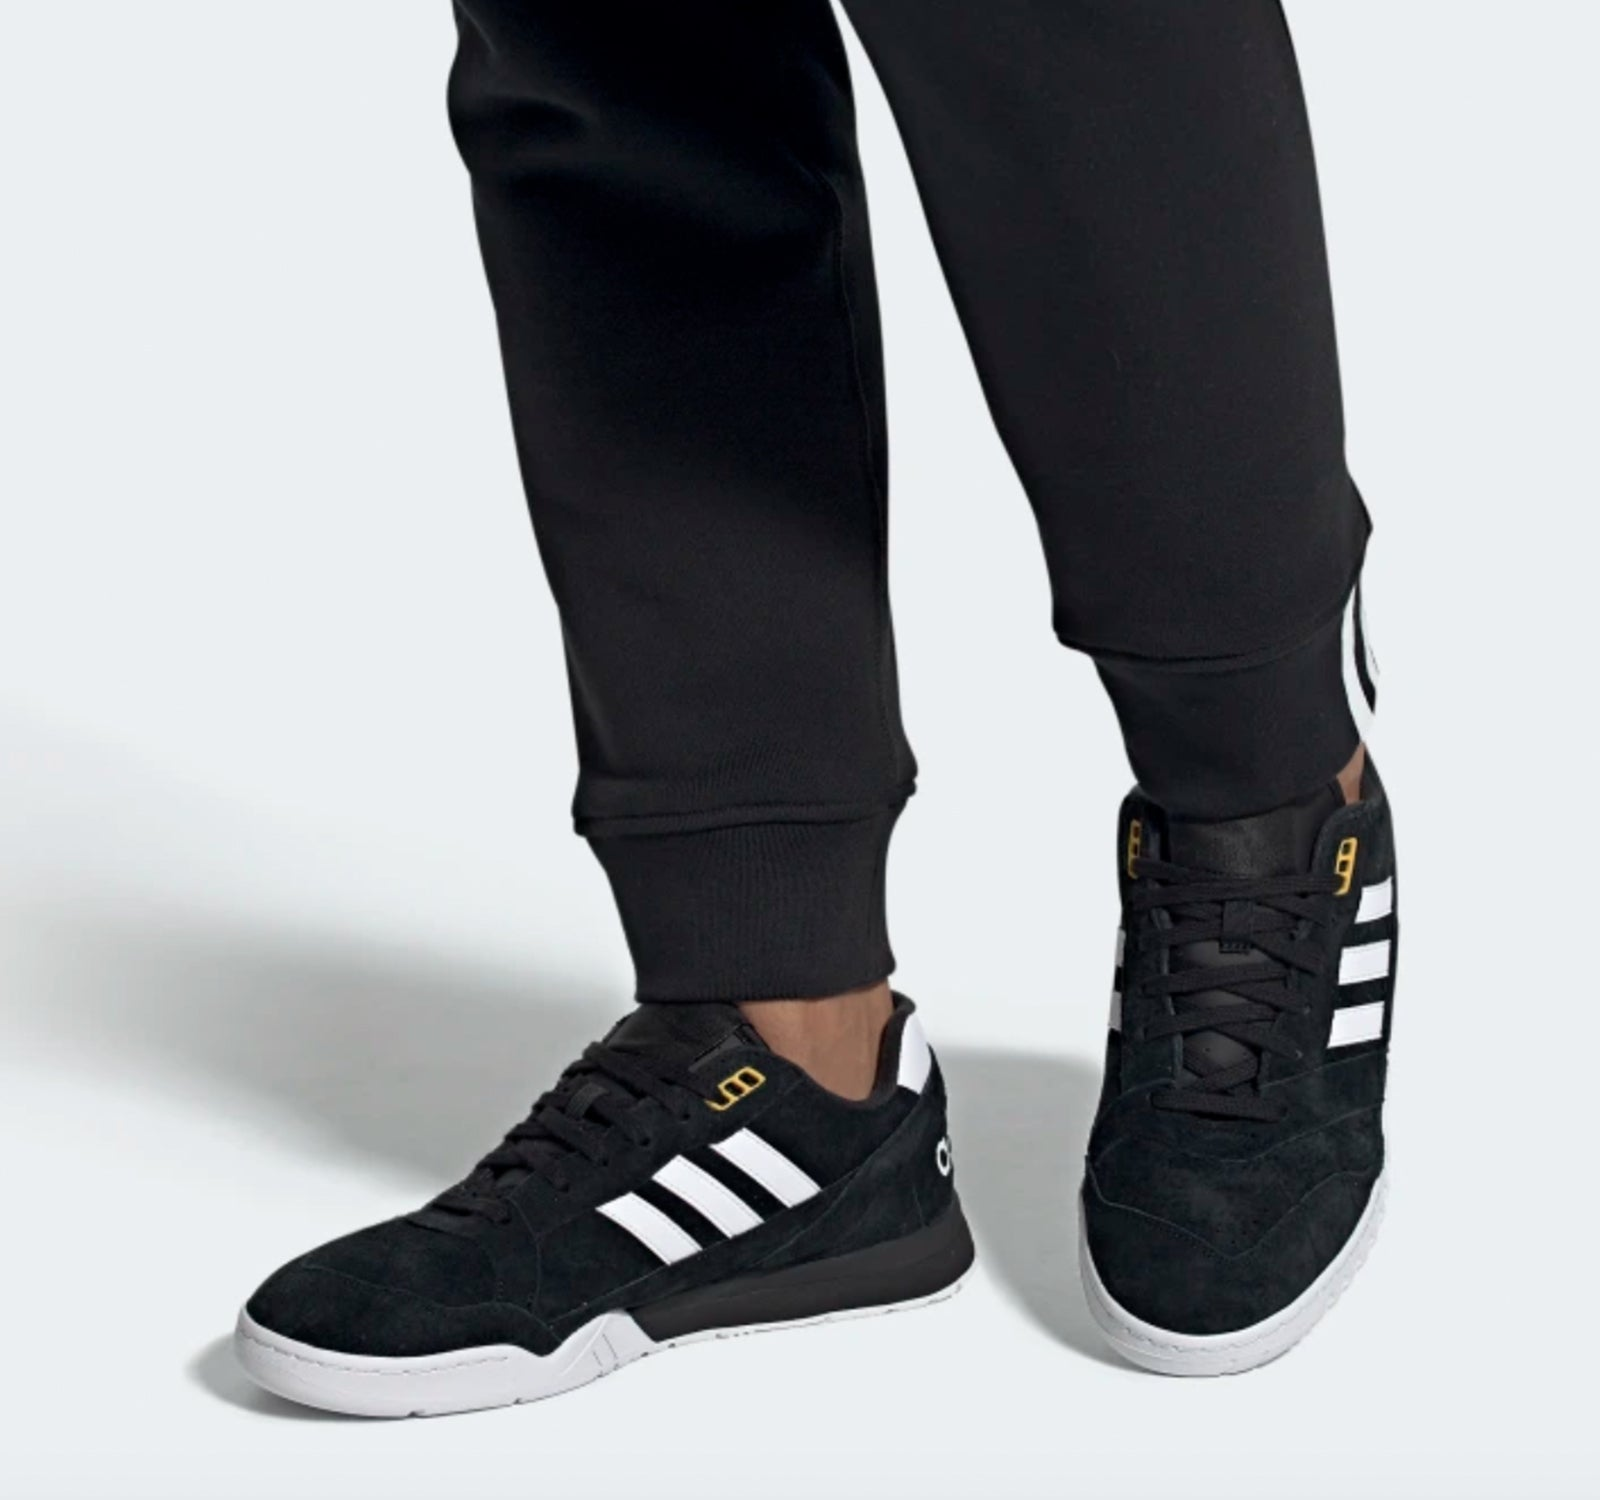 Adidas A.R. Trainer Men's Sneaker– On